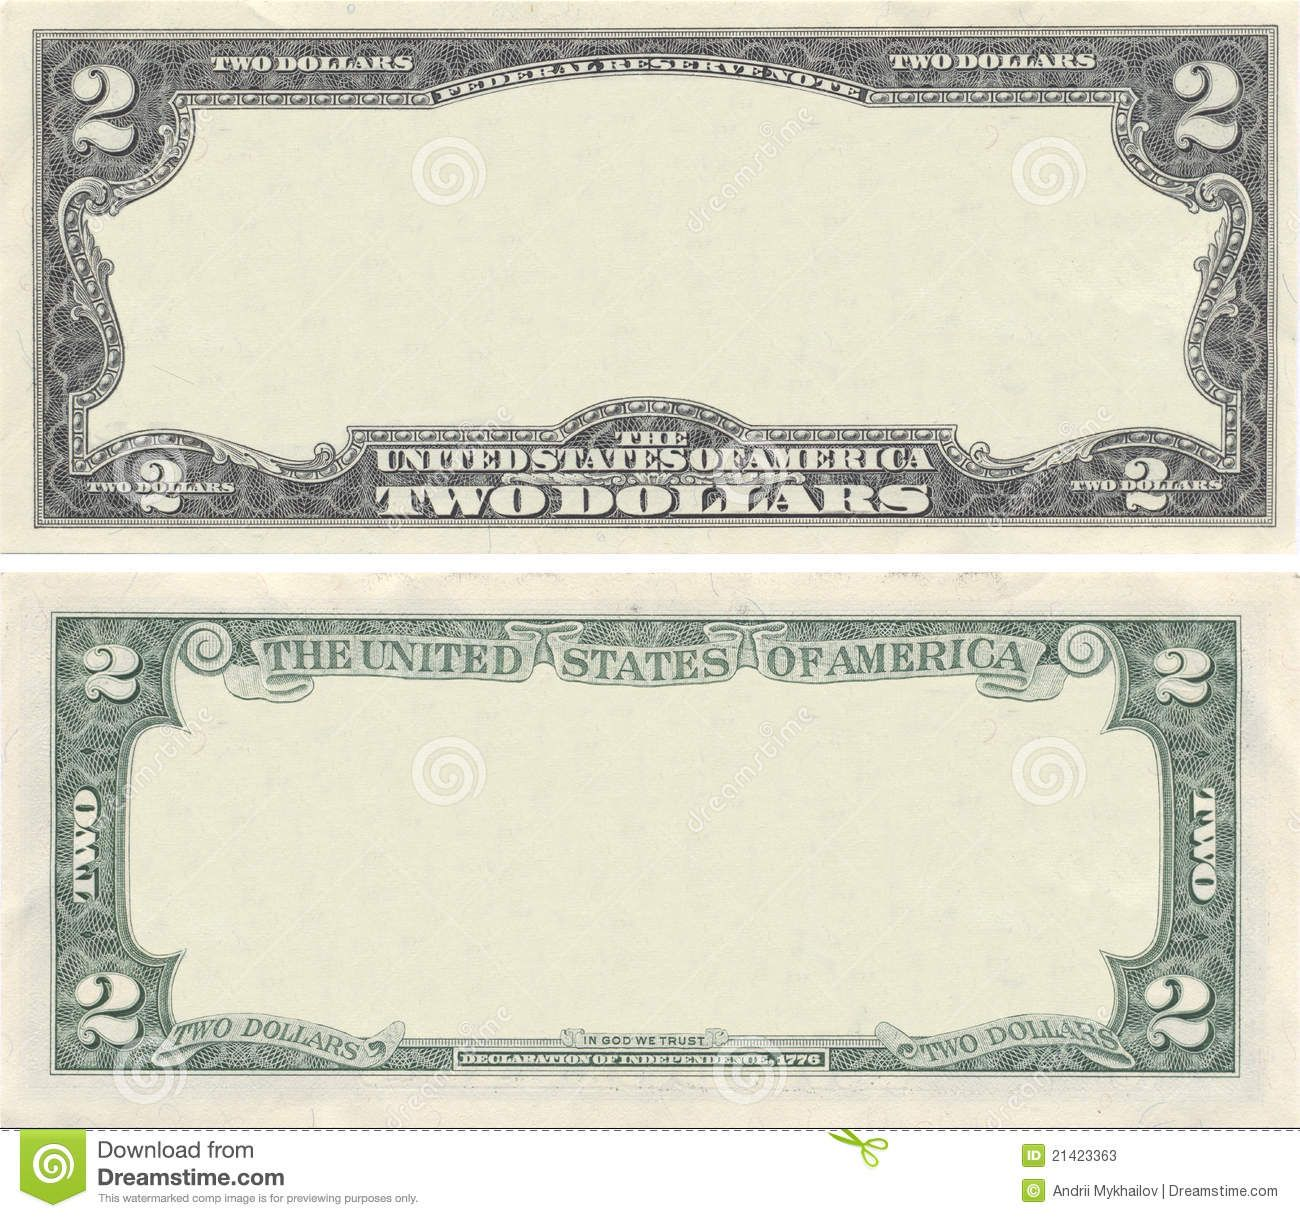 Clear 2 Dollar Banknote Pattern For Design Purposes Sponsored Ad Ad Dollar Purposes Banknote Clear Money Template Dollar Banknote Bank Notes Design your own money template